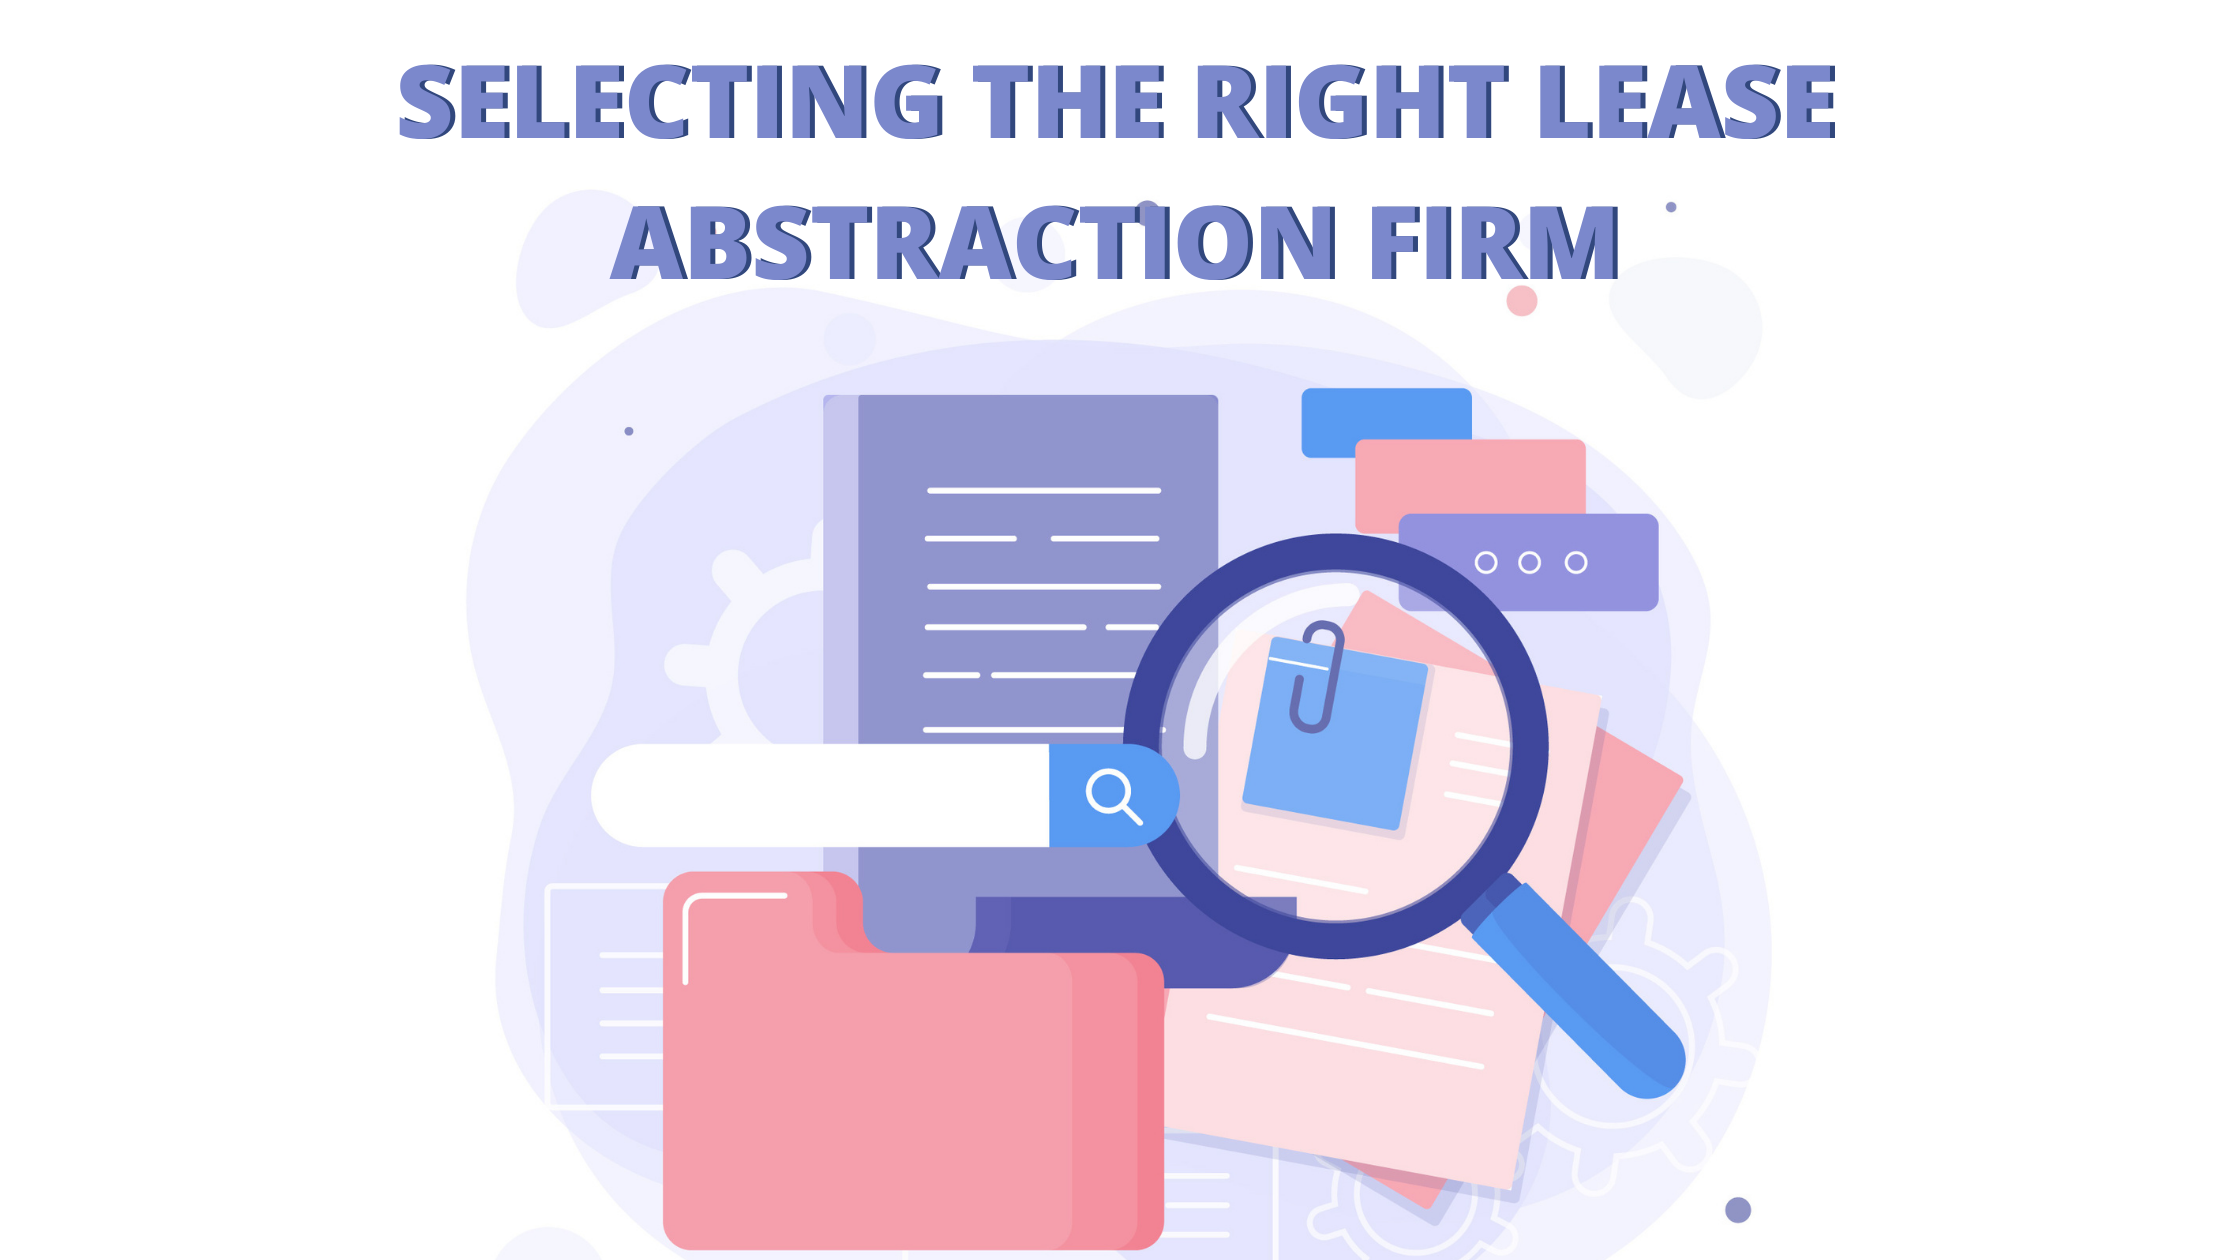 Selecting the right lease abstraction firm